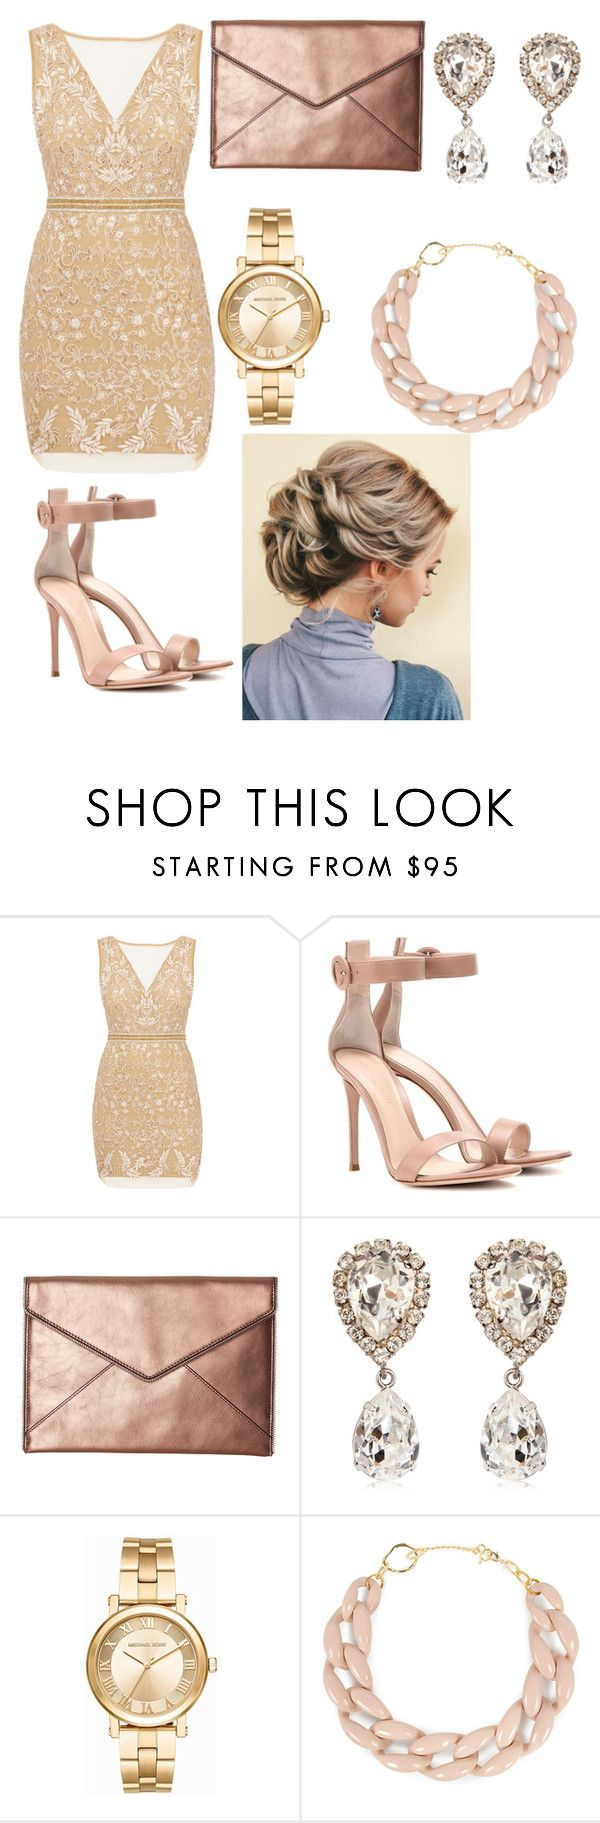 """Red carpet look"" by amy-chavez-1 ❤ liked on Polyvore featuring Nicole Miller, Gianvito Rossi, Rebecca Minkoff, Dolce&Gabbana, Michael Kors and DIANA BROUSSARD"